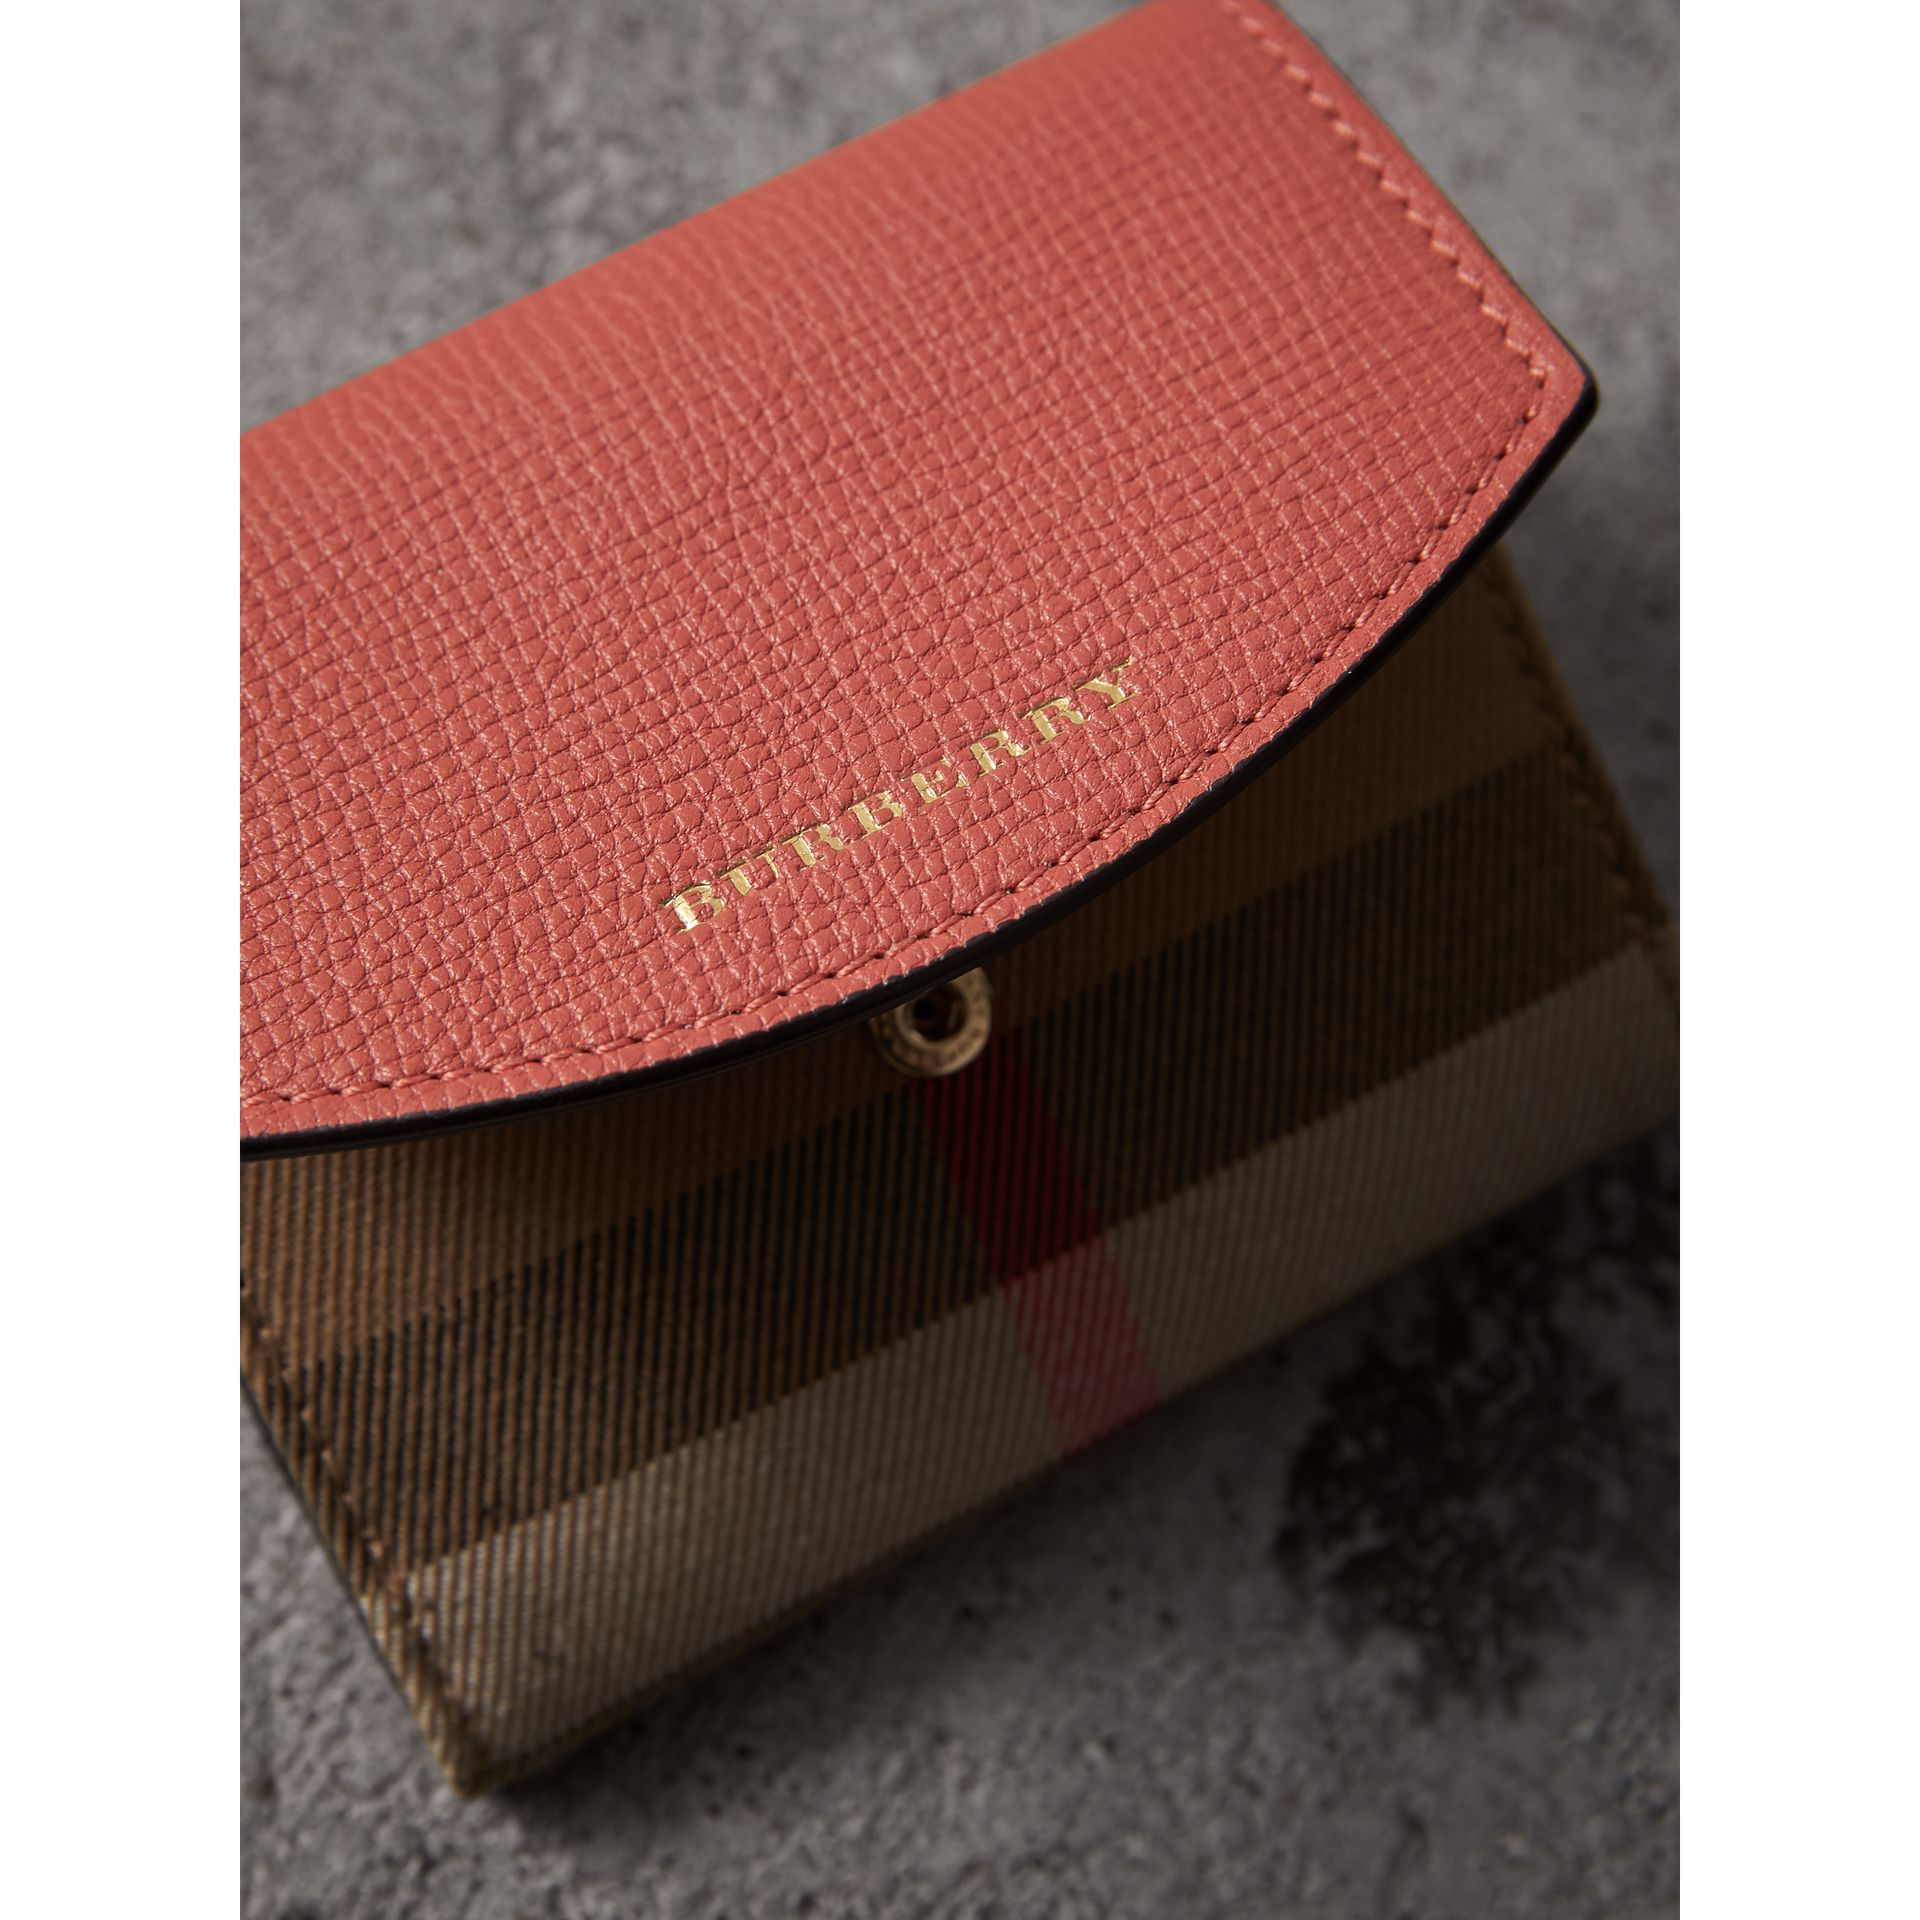 House Check and Leather Wallet in Cinnamon Red - Women | Burberry - gallery image 2